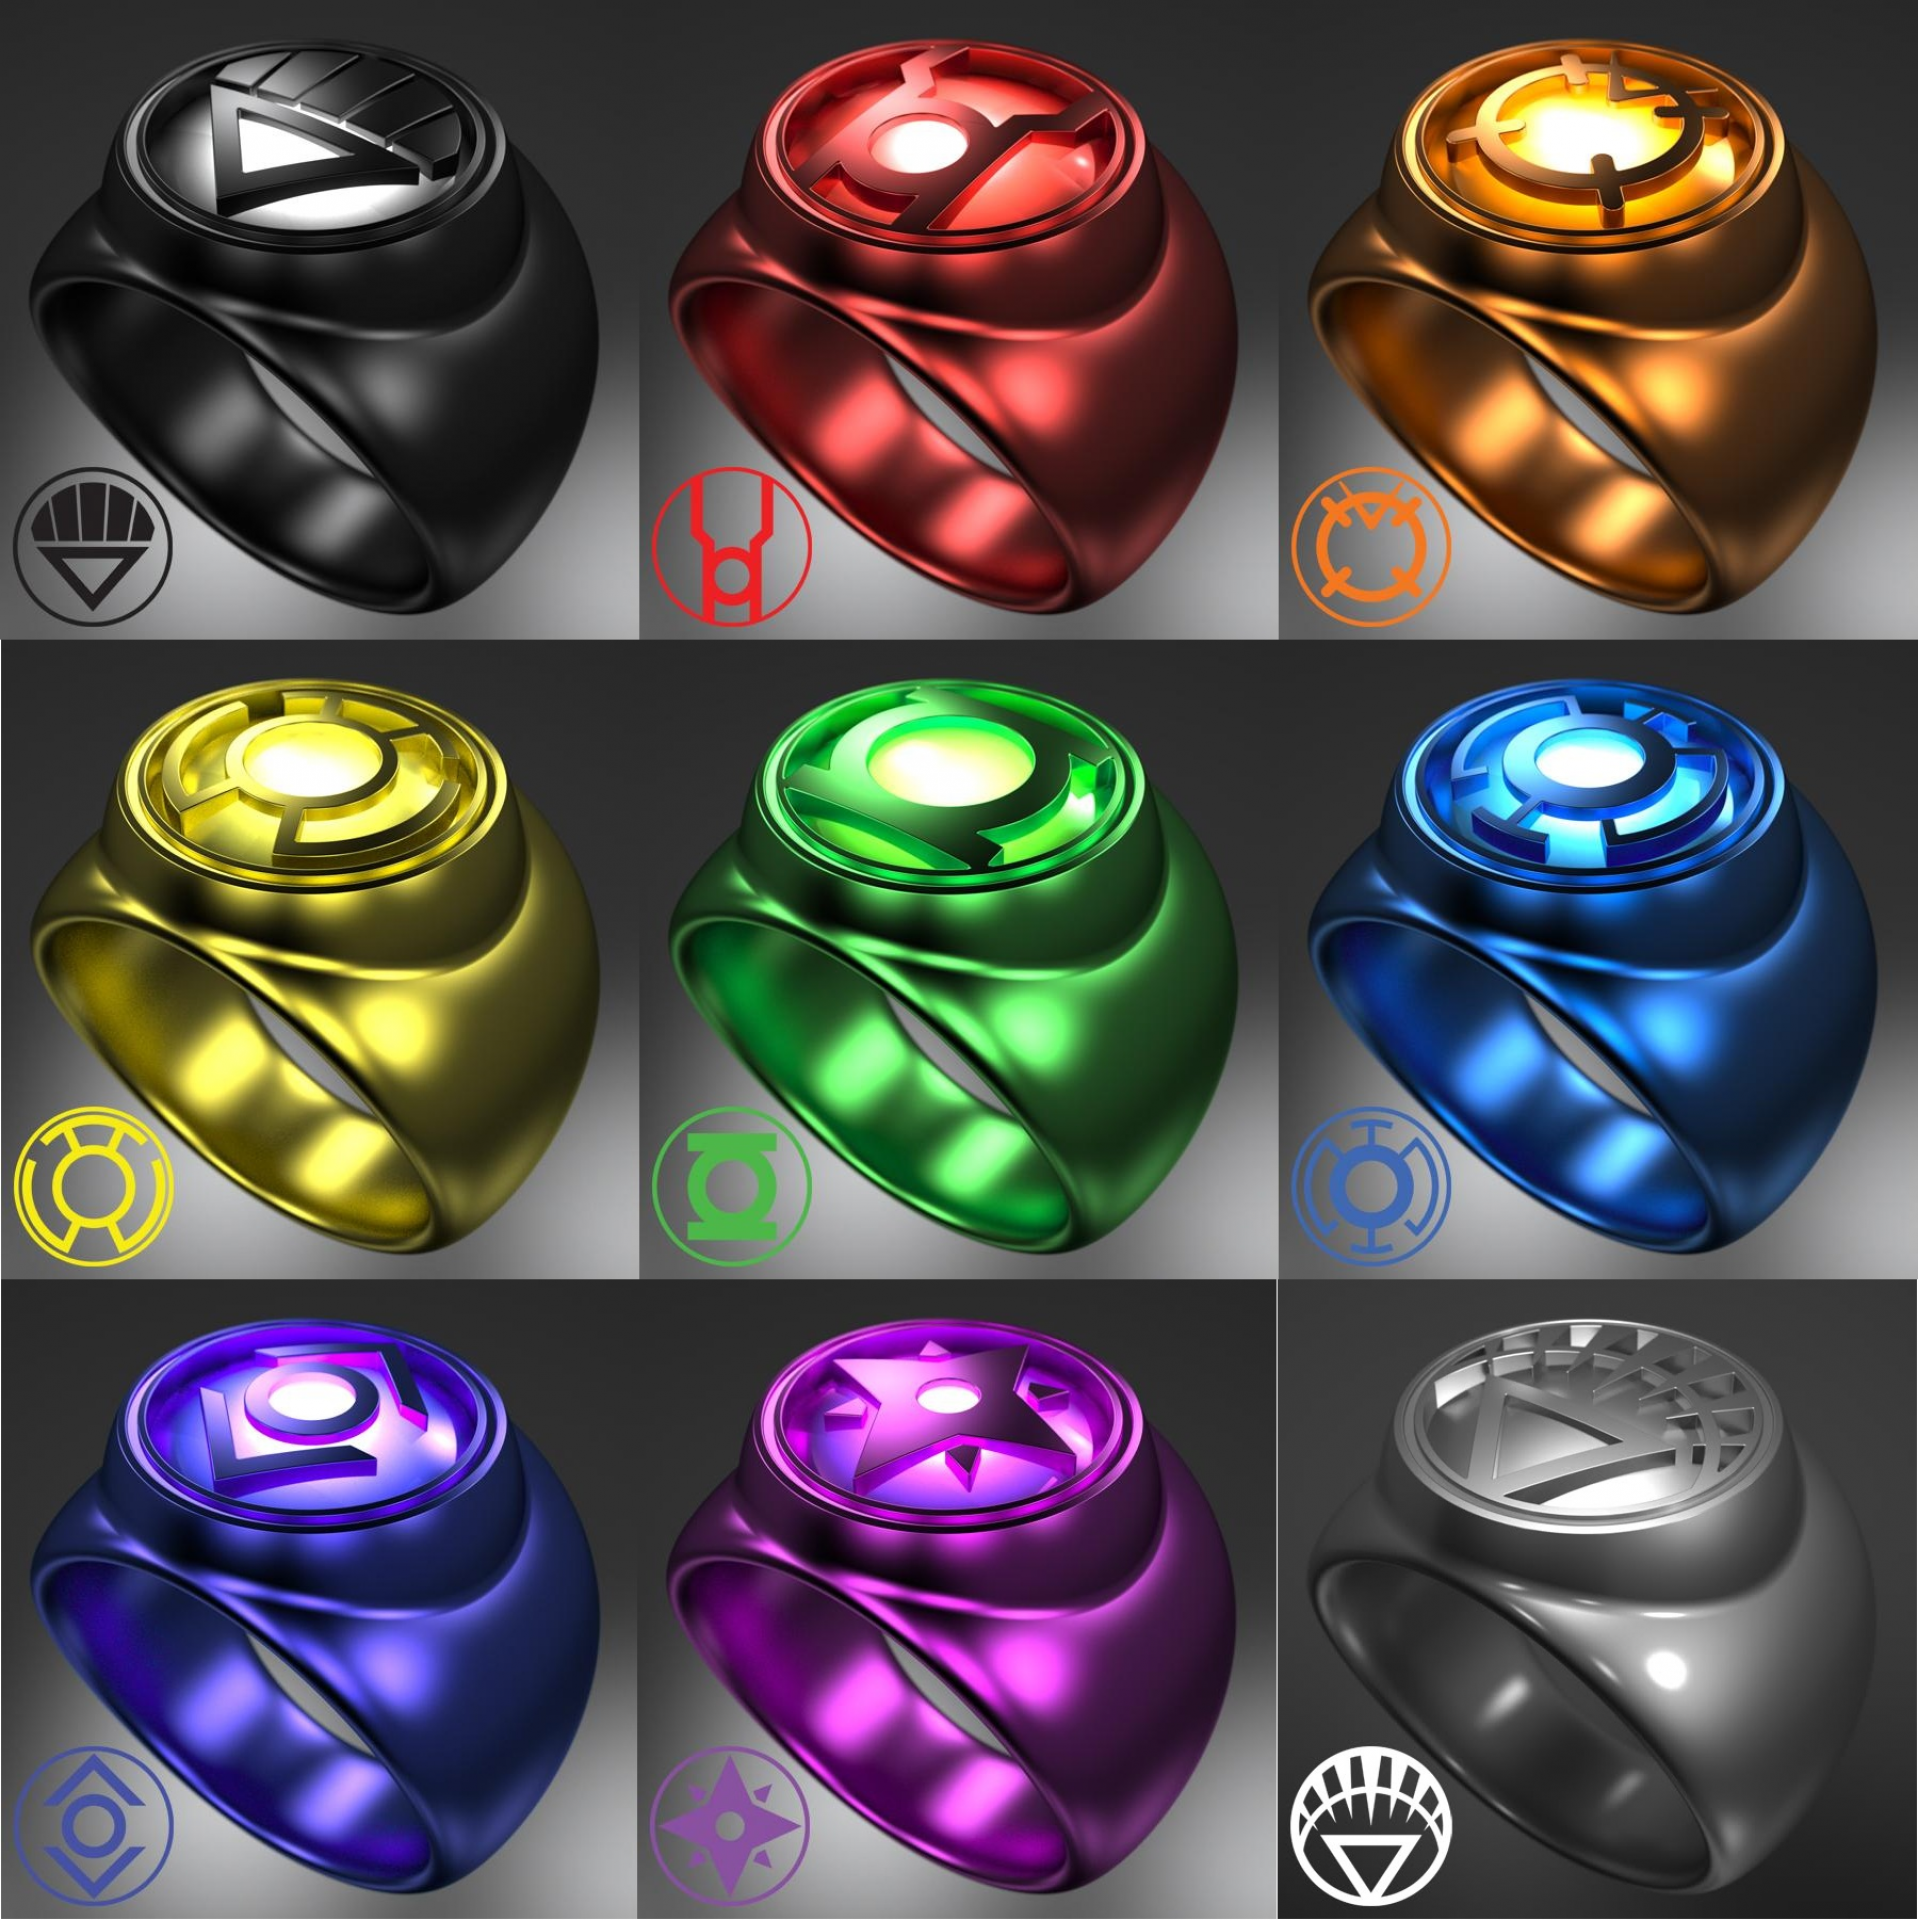 lantern corps rings | Ring Slingers | Pinterest | Comic